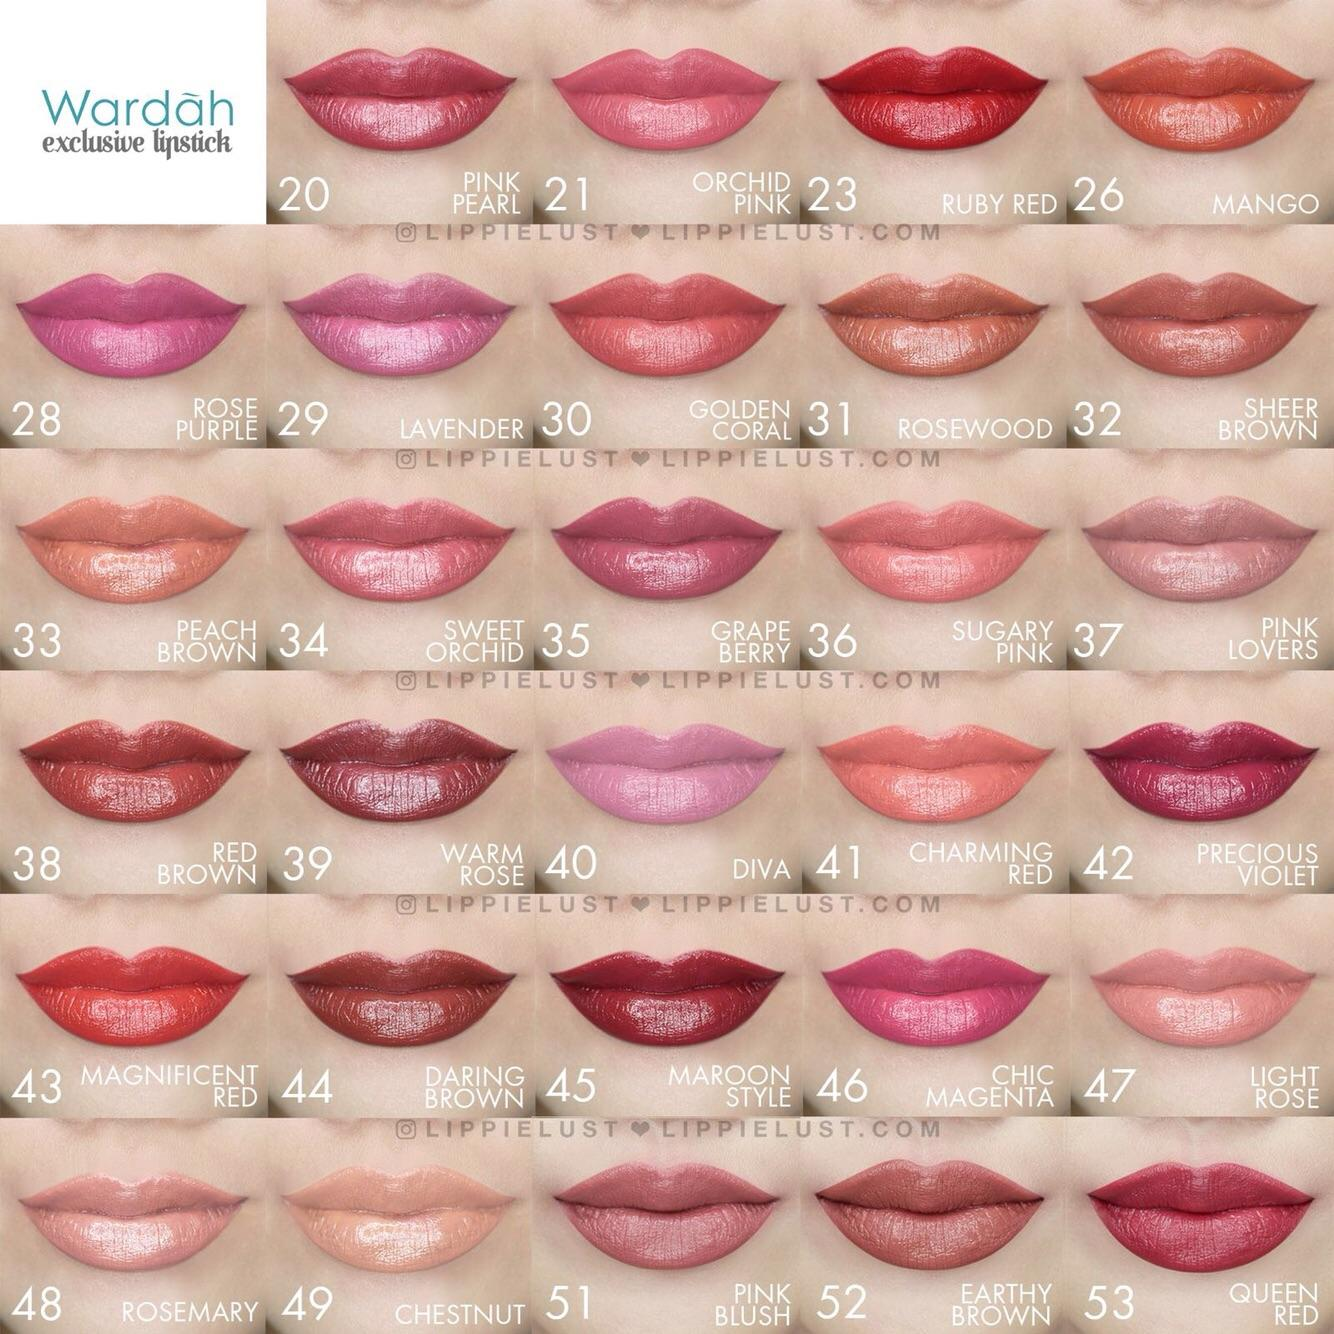 Wardah Exclusive Lipstick 2